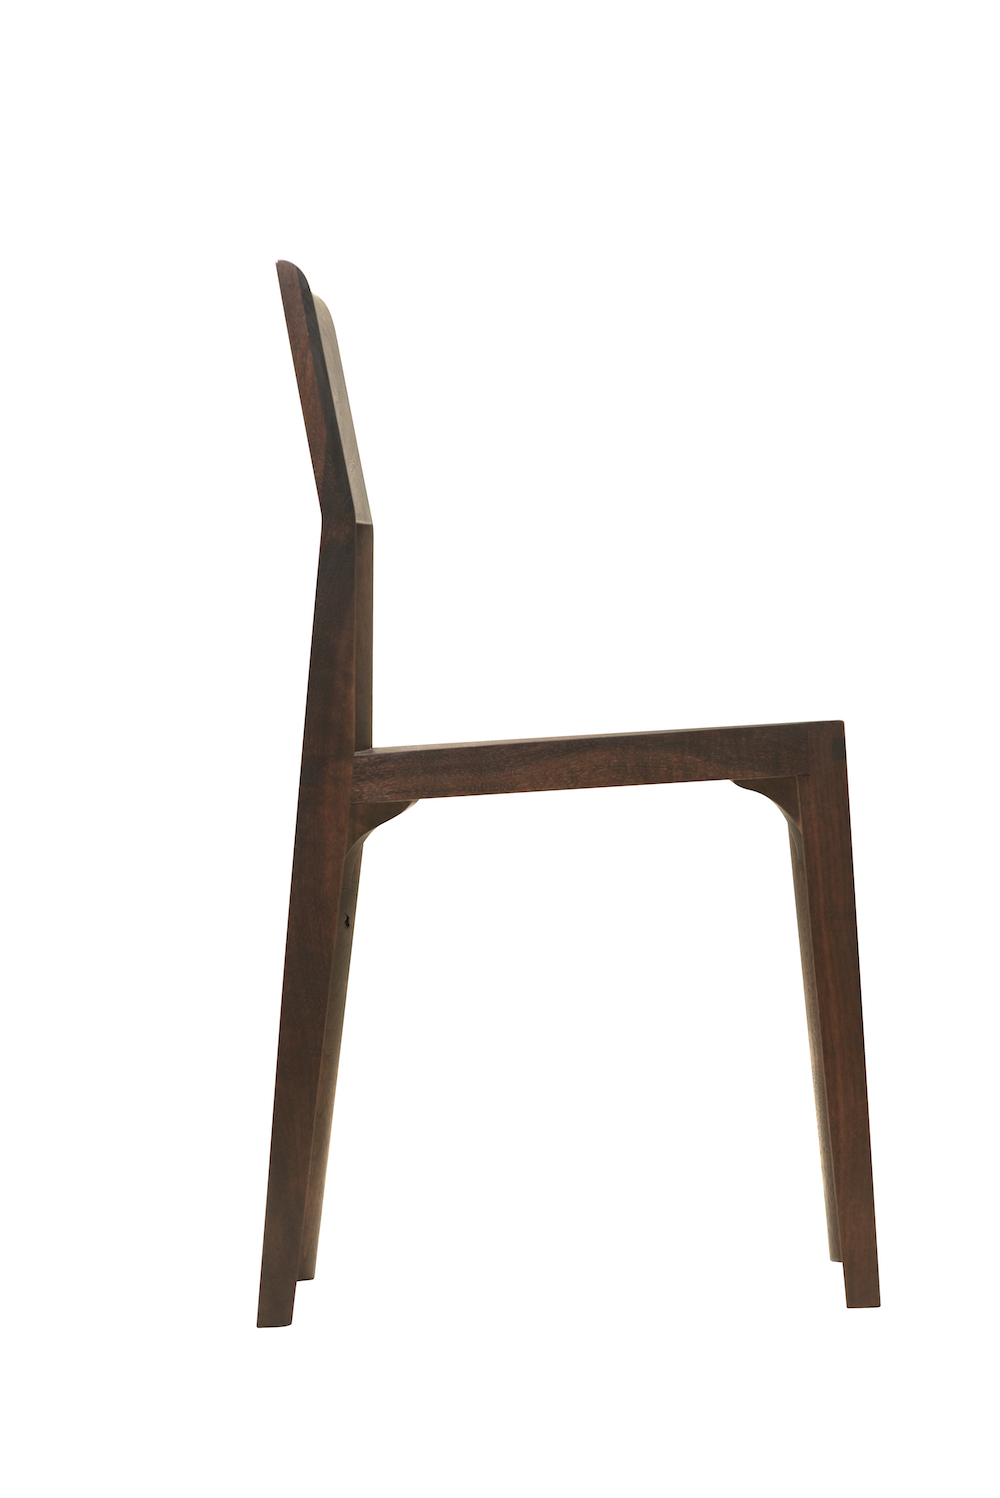 side view of the Quarter Round Chair by artist Christopher Kurtz